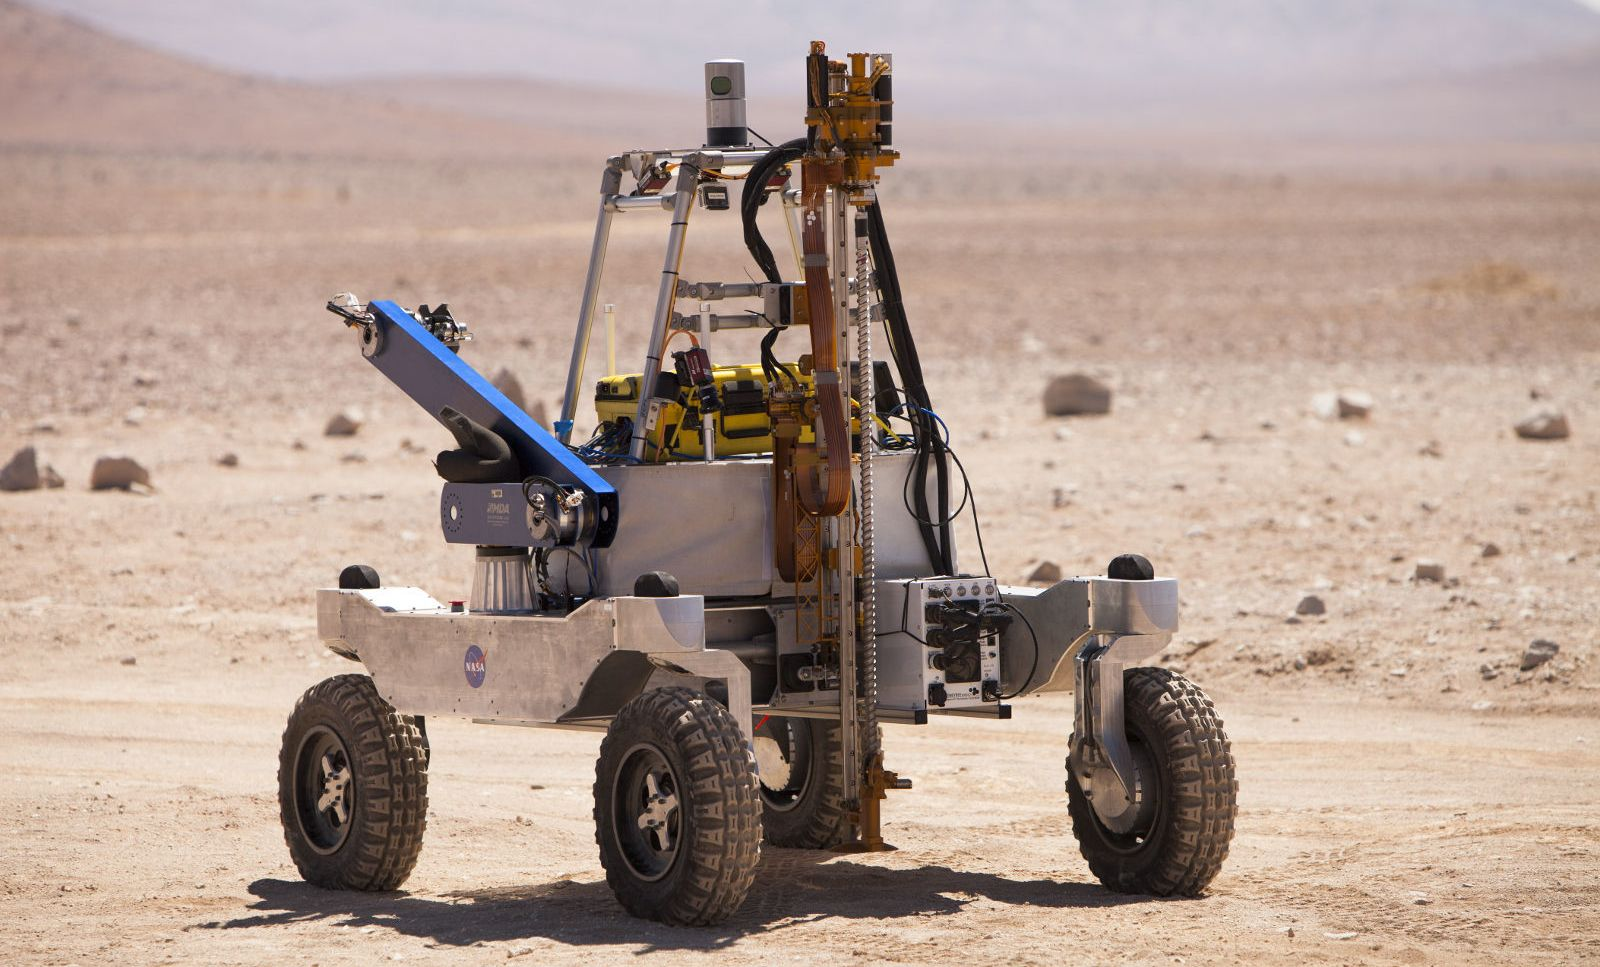 NASA is experiencing in the Chilean desert instruments to search for life on Mars